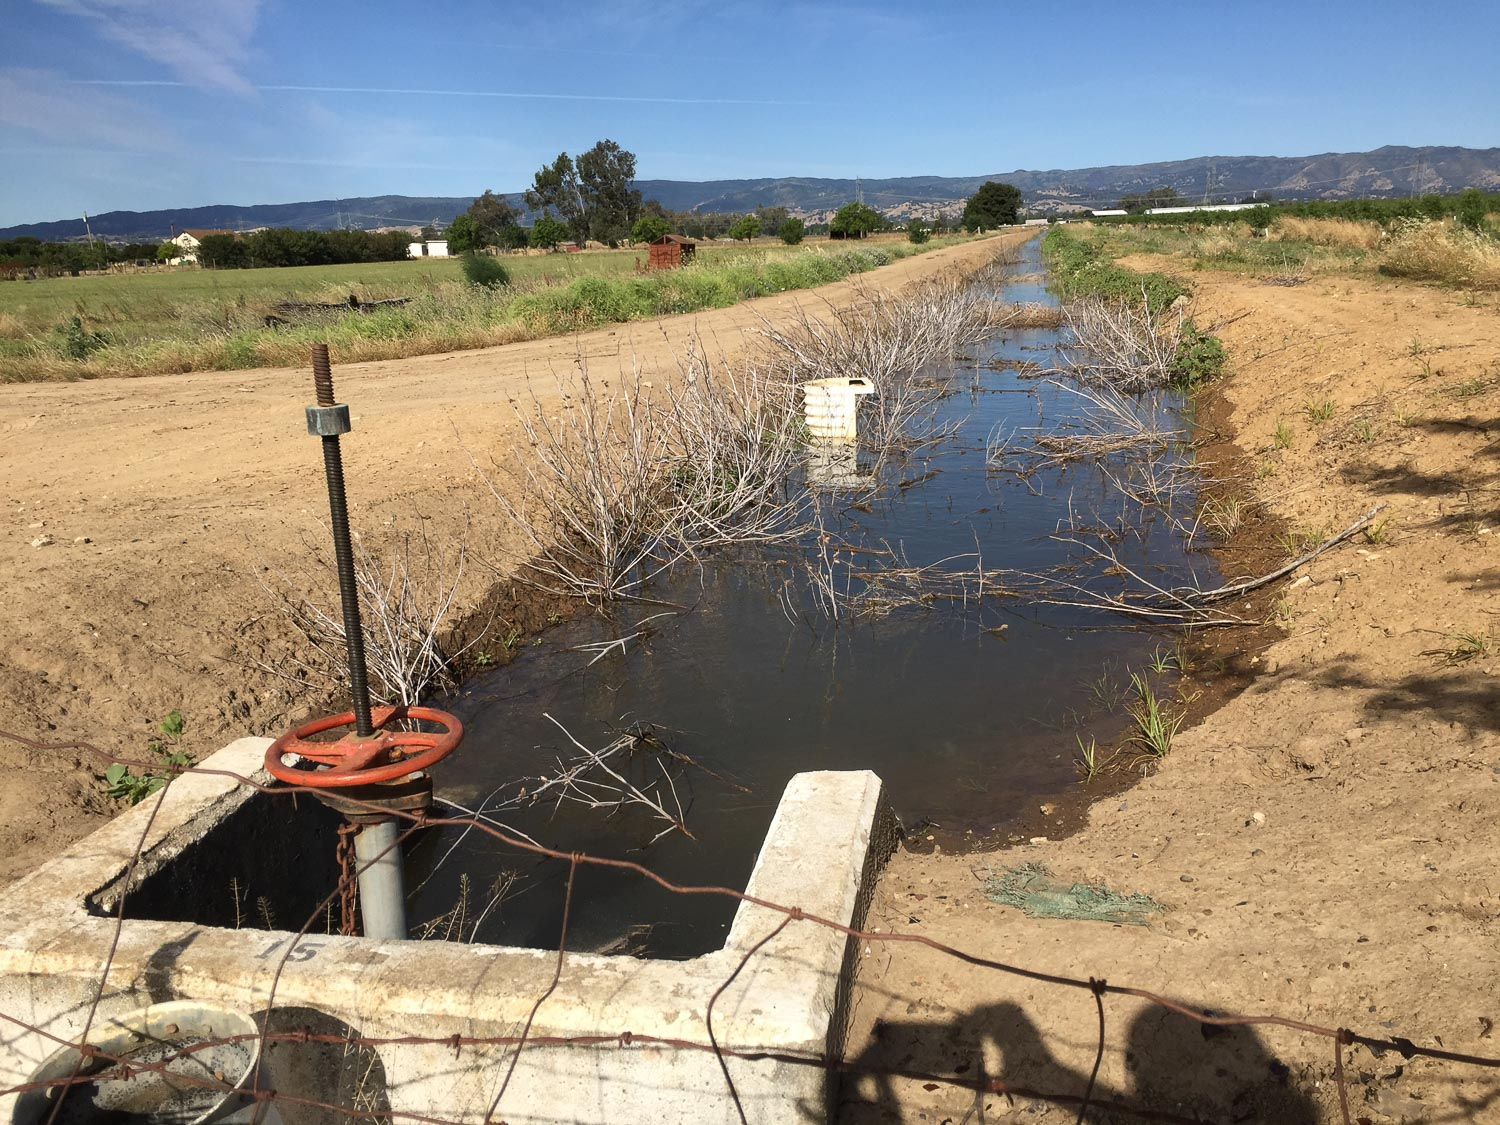 Irrigation water in ditch